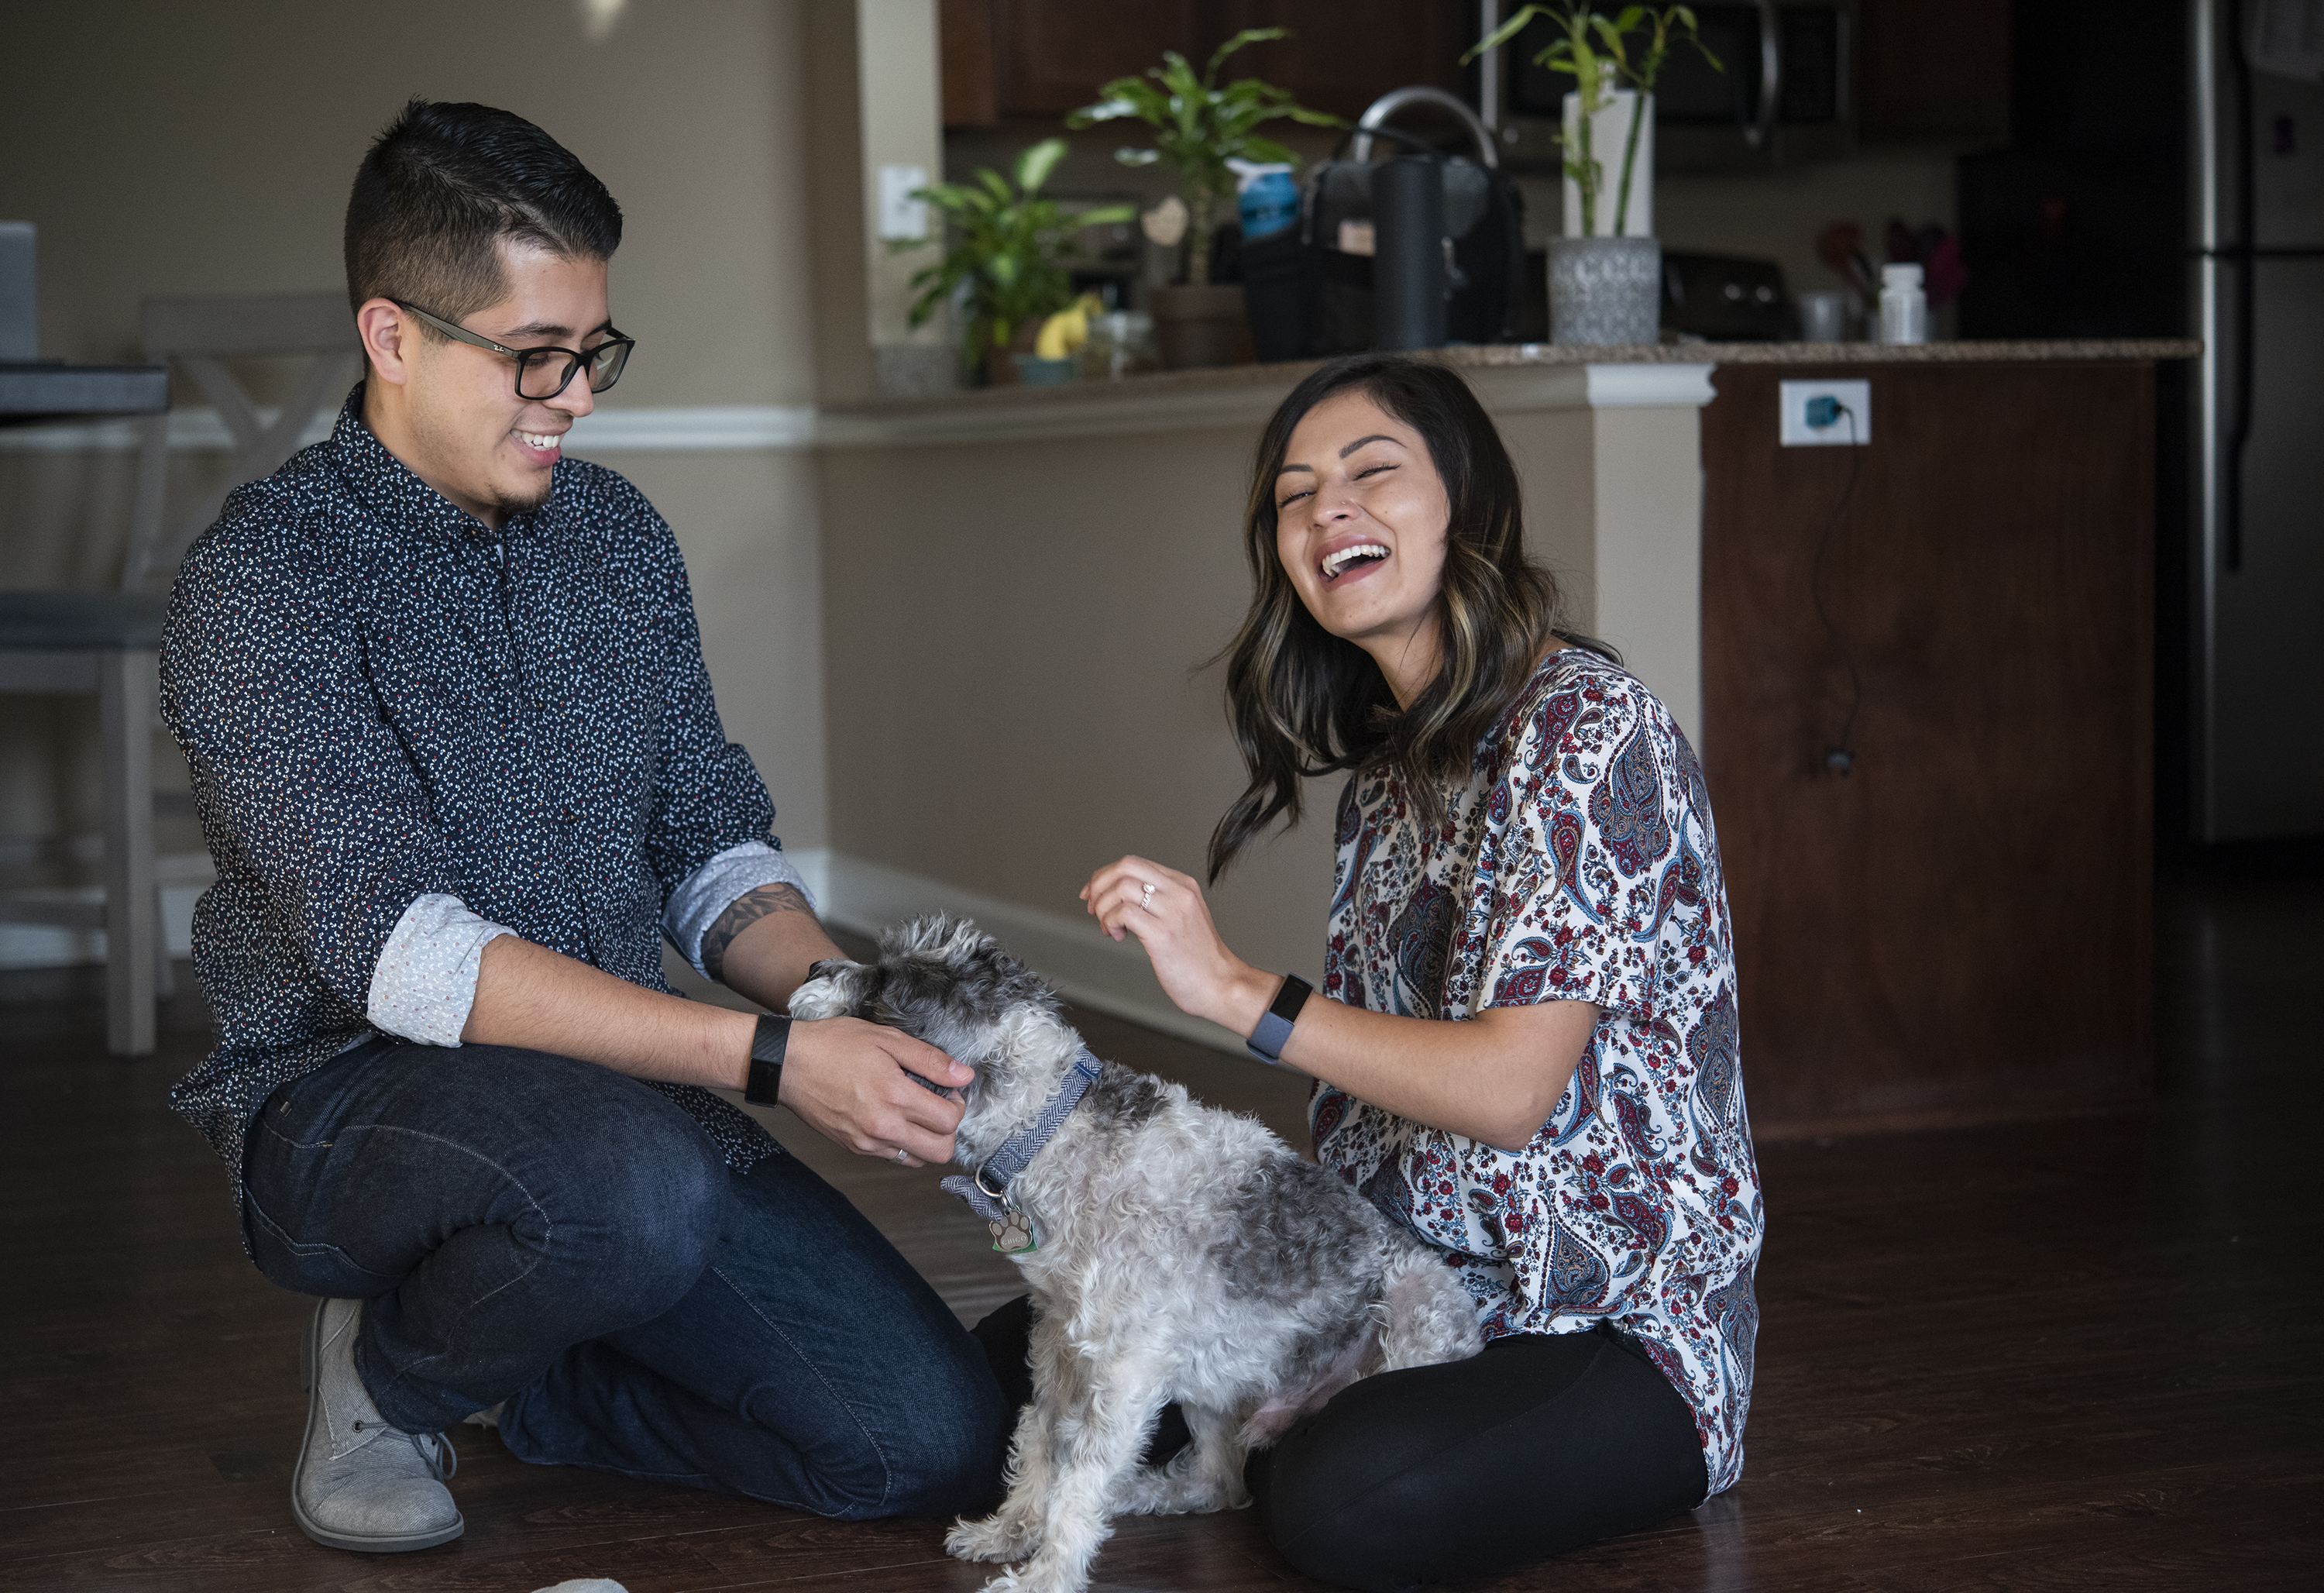 Emmanuel Diaz and Yisarai Valbuena Sanchez play with their new dog Chico at their apartment in Tyler, Texas, on Thursday, Oct. 10, 2019. The couple are both DACA recipients and moved to Tyler from Salt Lake City in June.